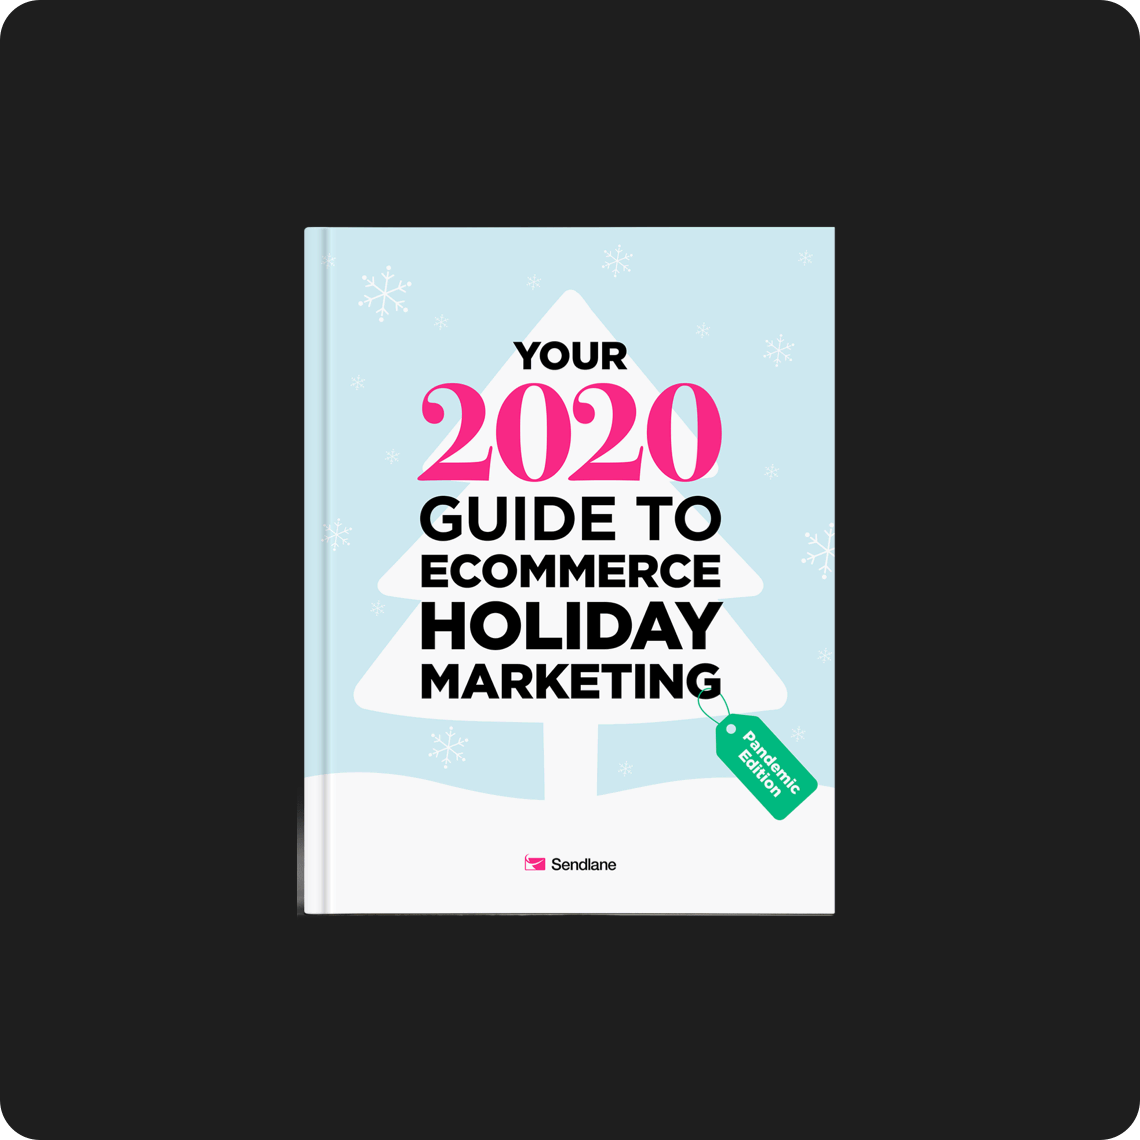 Your 2020 Guide to eCommerce Holiday Marketing (Pandemic Edition)